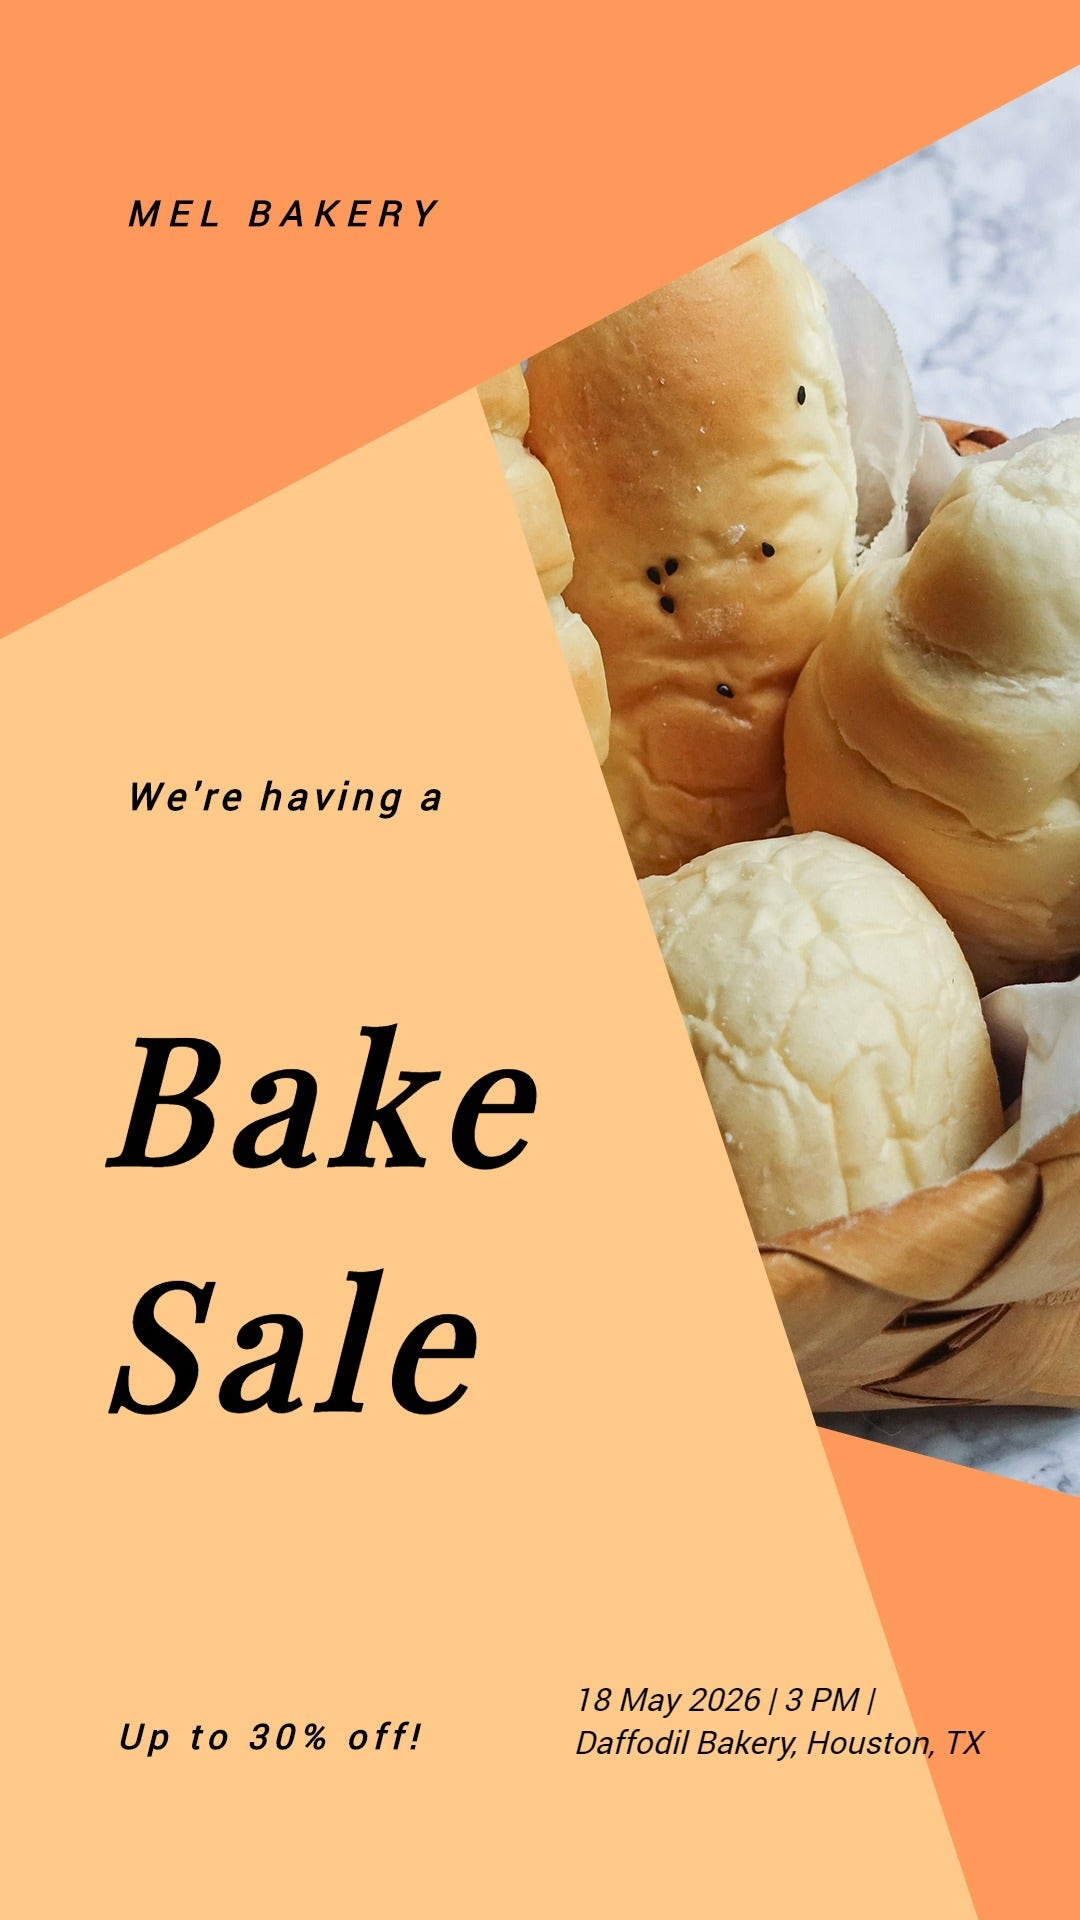 Bake Sale Event Whatsapp Post Template